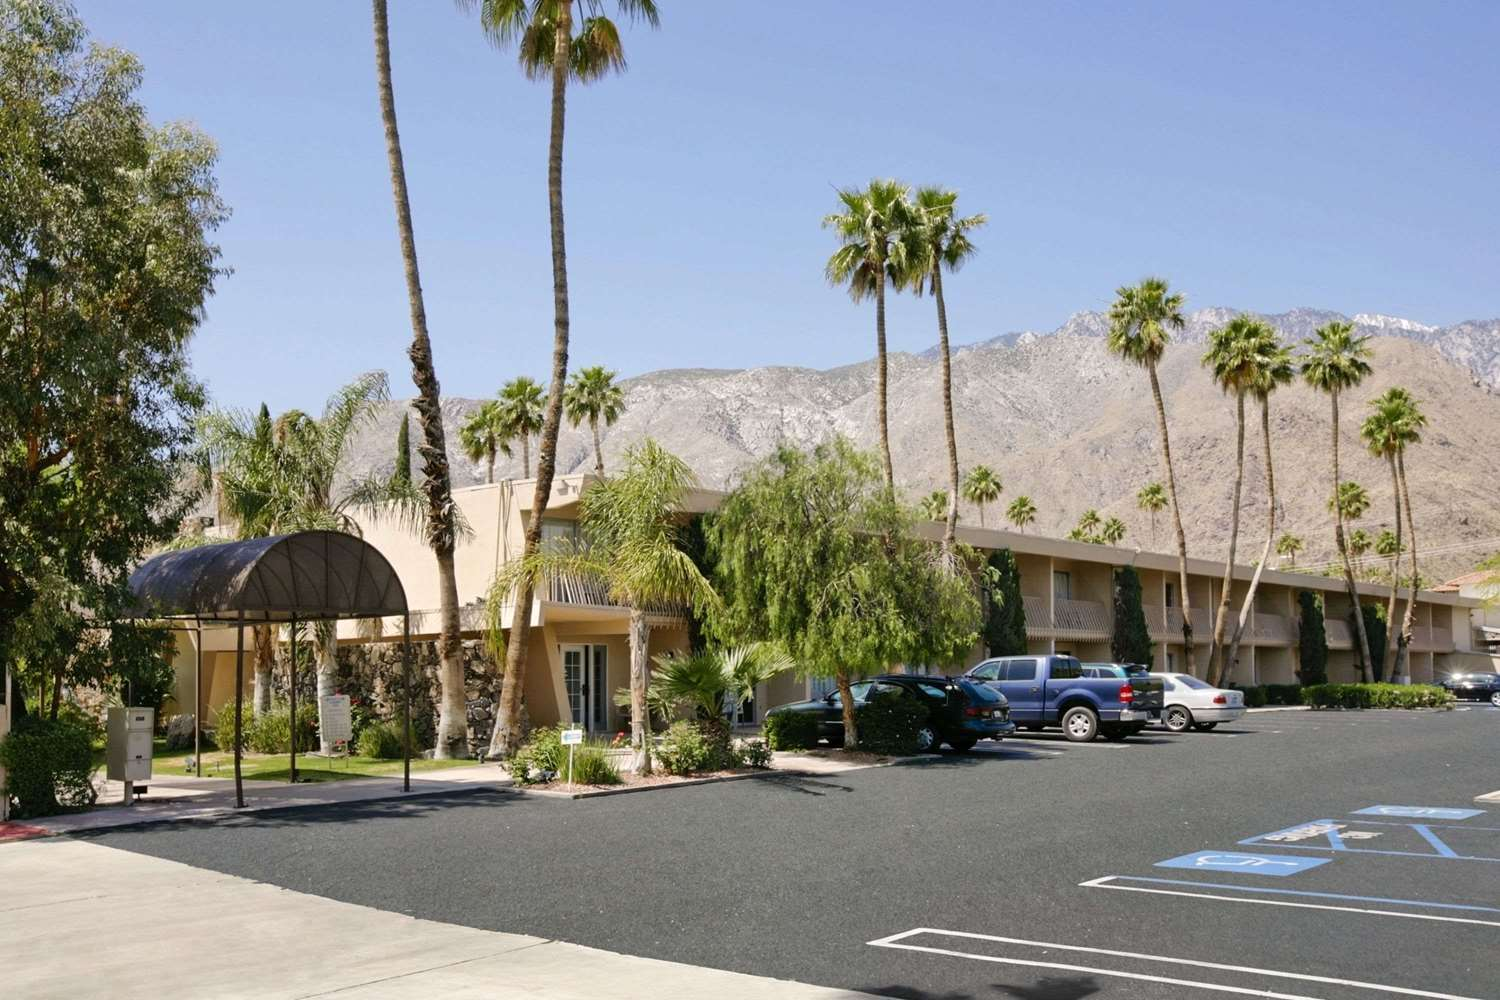 Hotels Near Agua Caliente Palm Springs